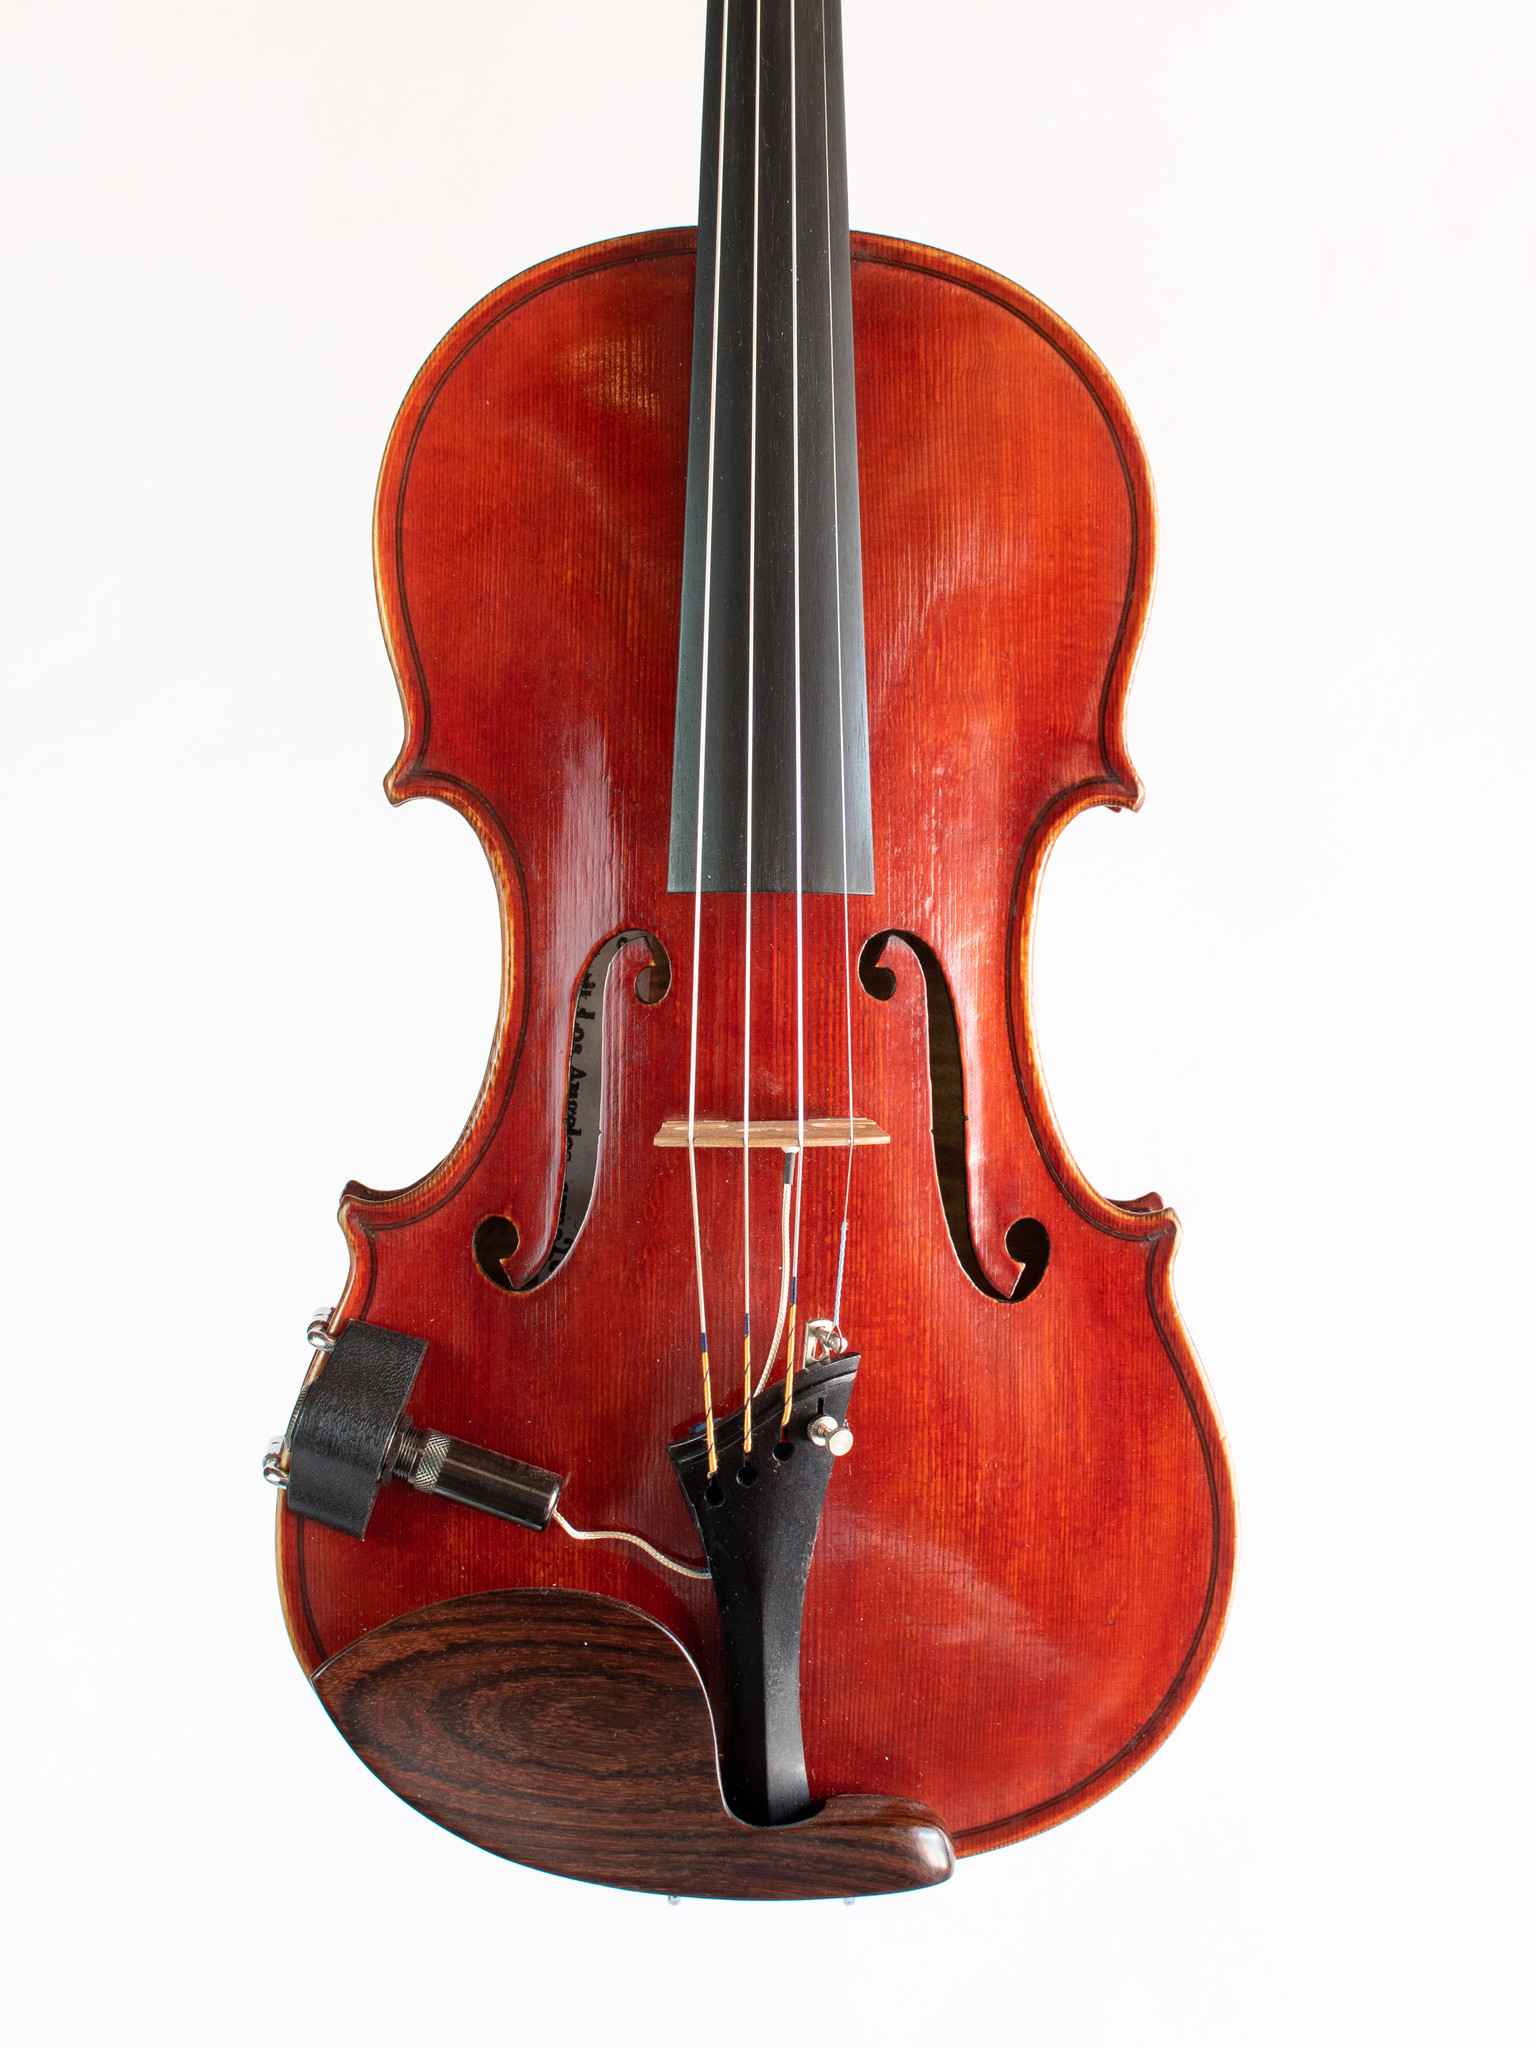 Jeffrey Muller violin, 2016, Los Angeles, USA